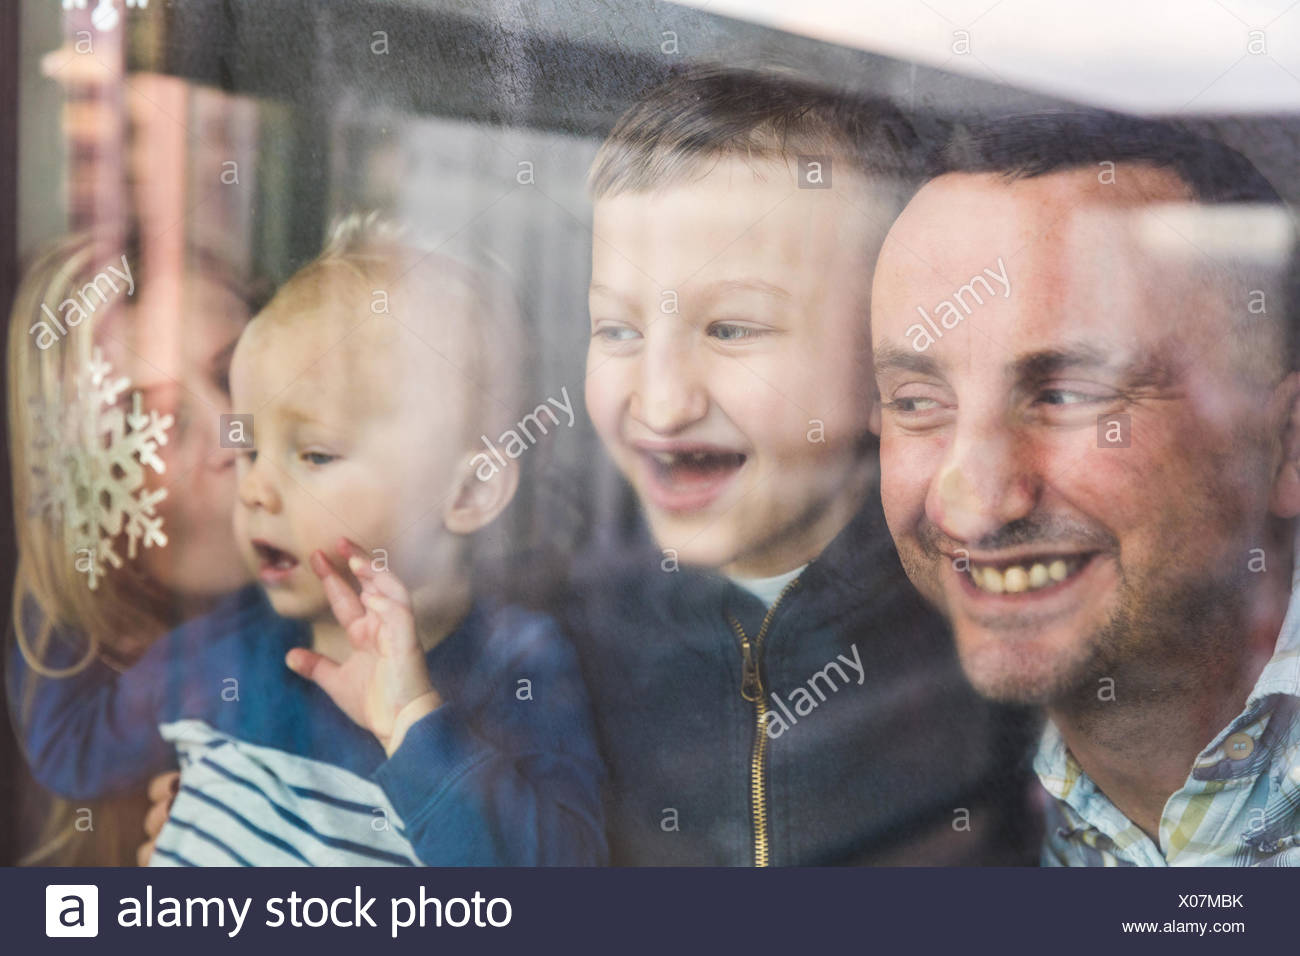 Mother, father and sons looking out of window, squashing faces against glass - Stock Image